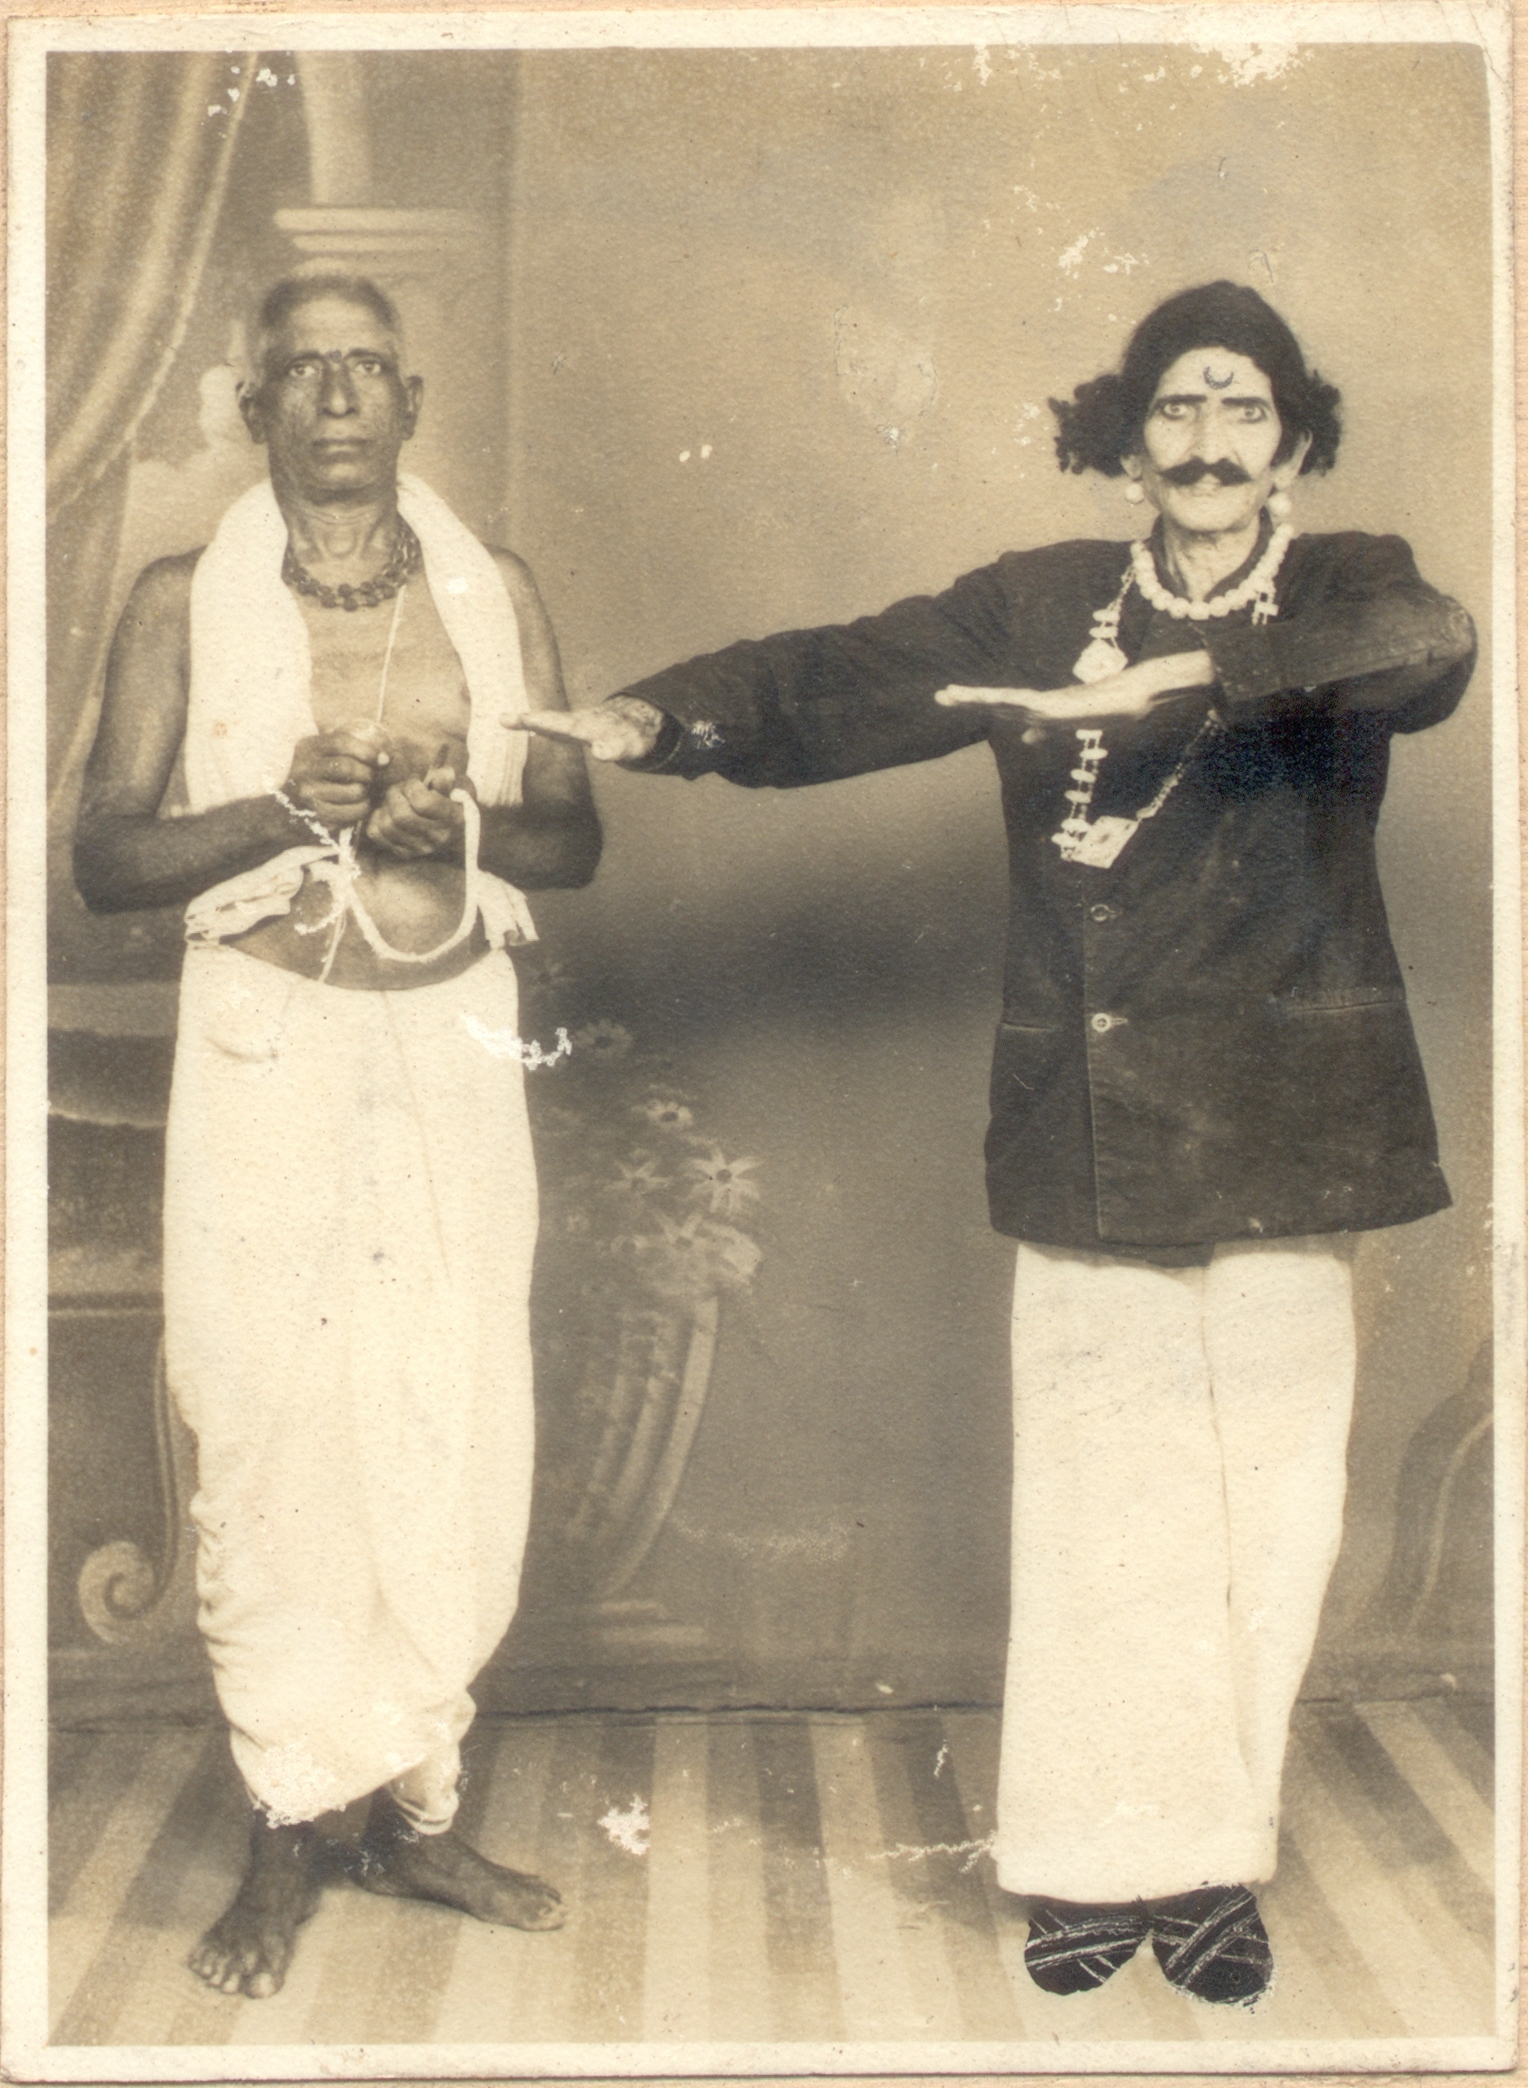 Chinta Sri Rama Murthy's father Chinta Suryaprakasam in Sarada Vesham - Photo taken 100 years ago